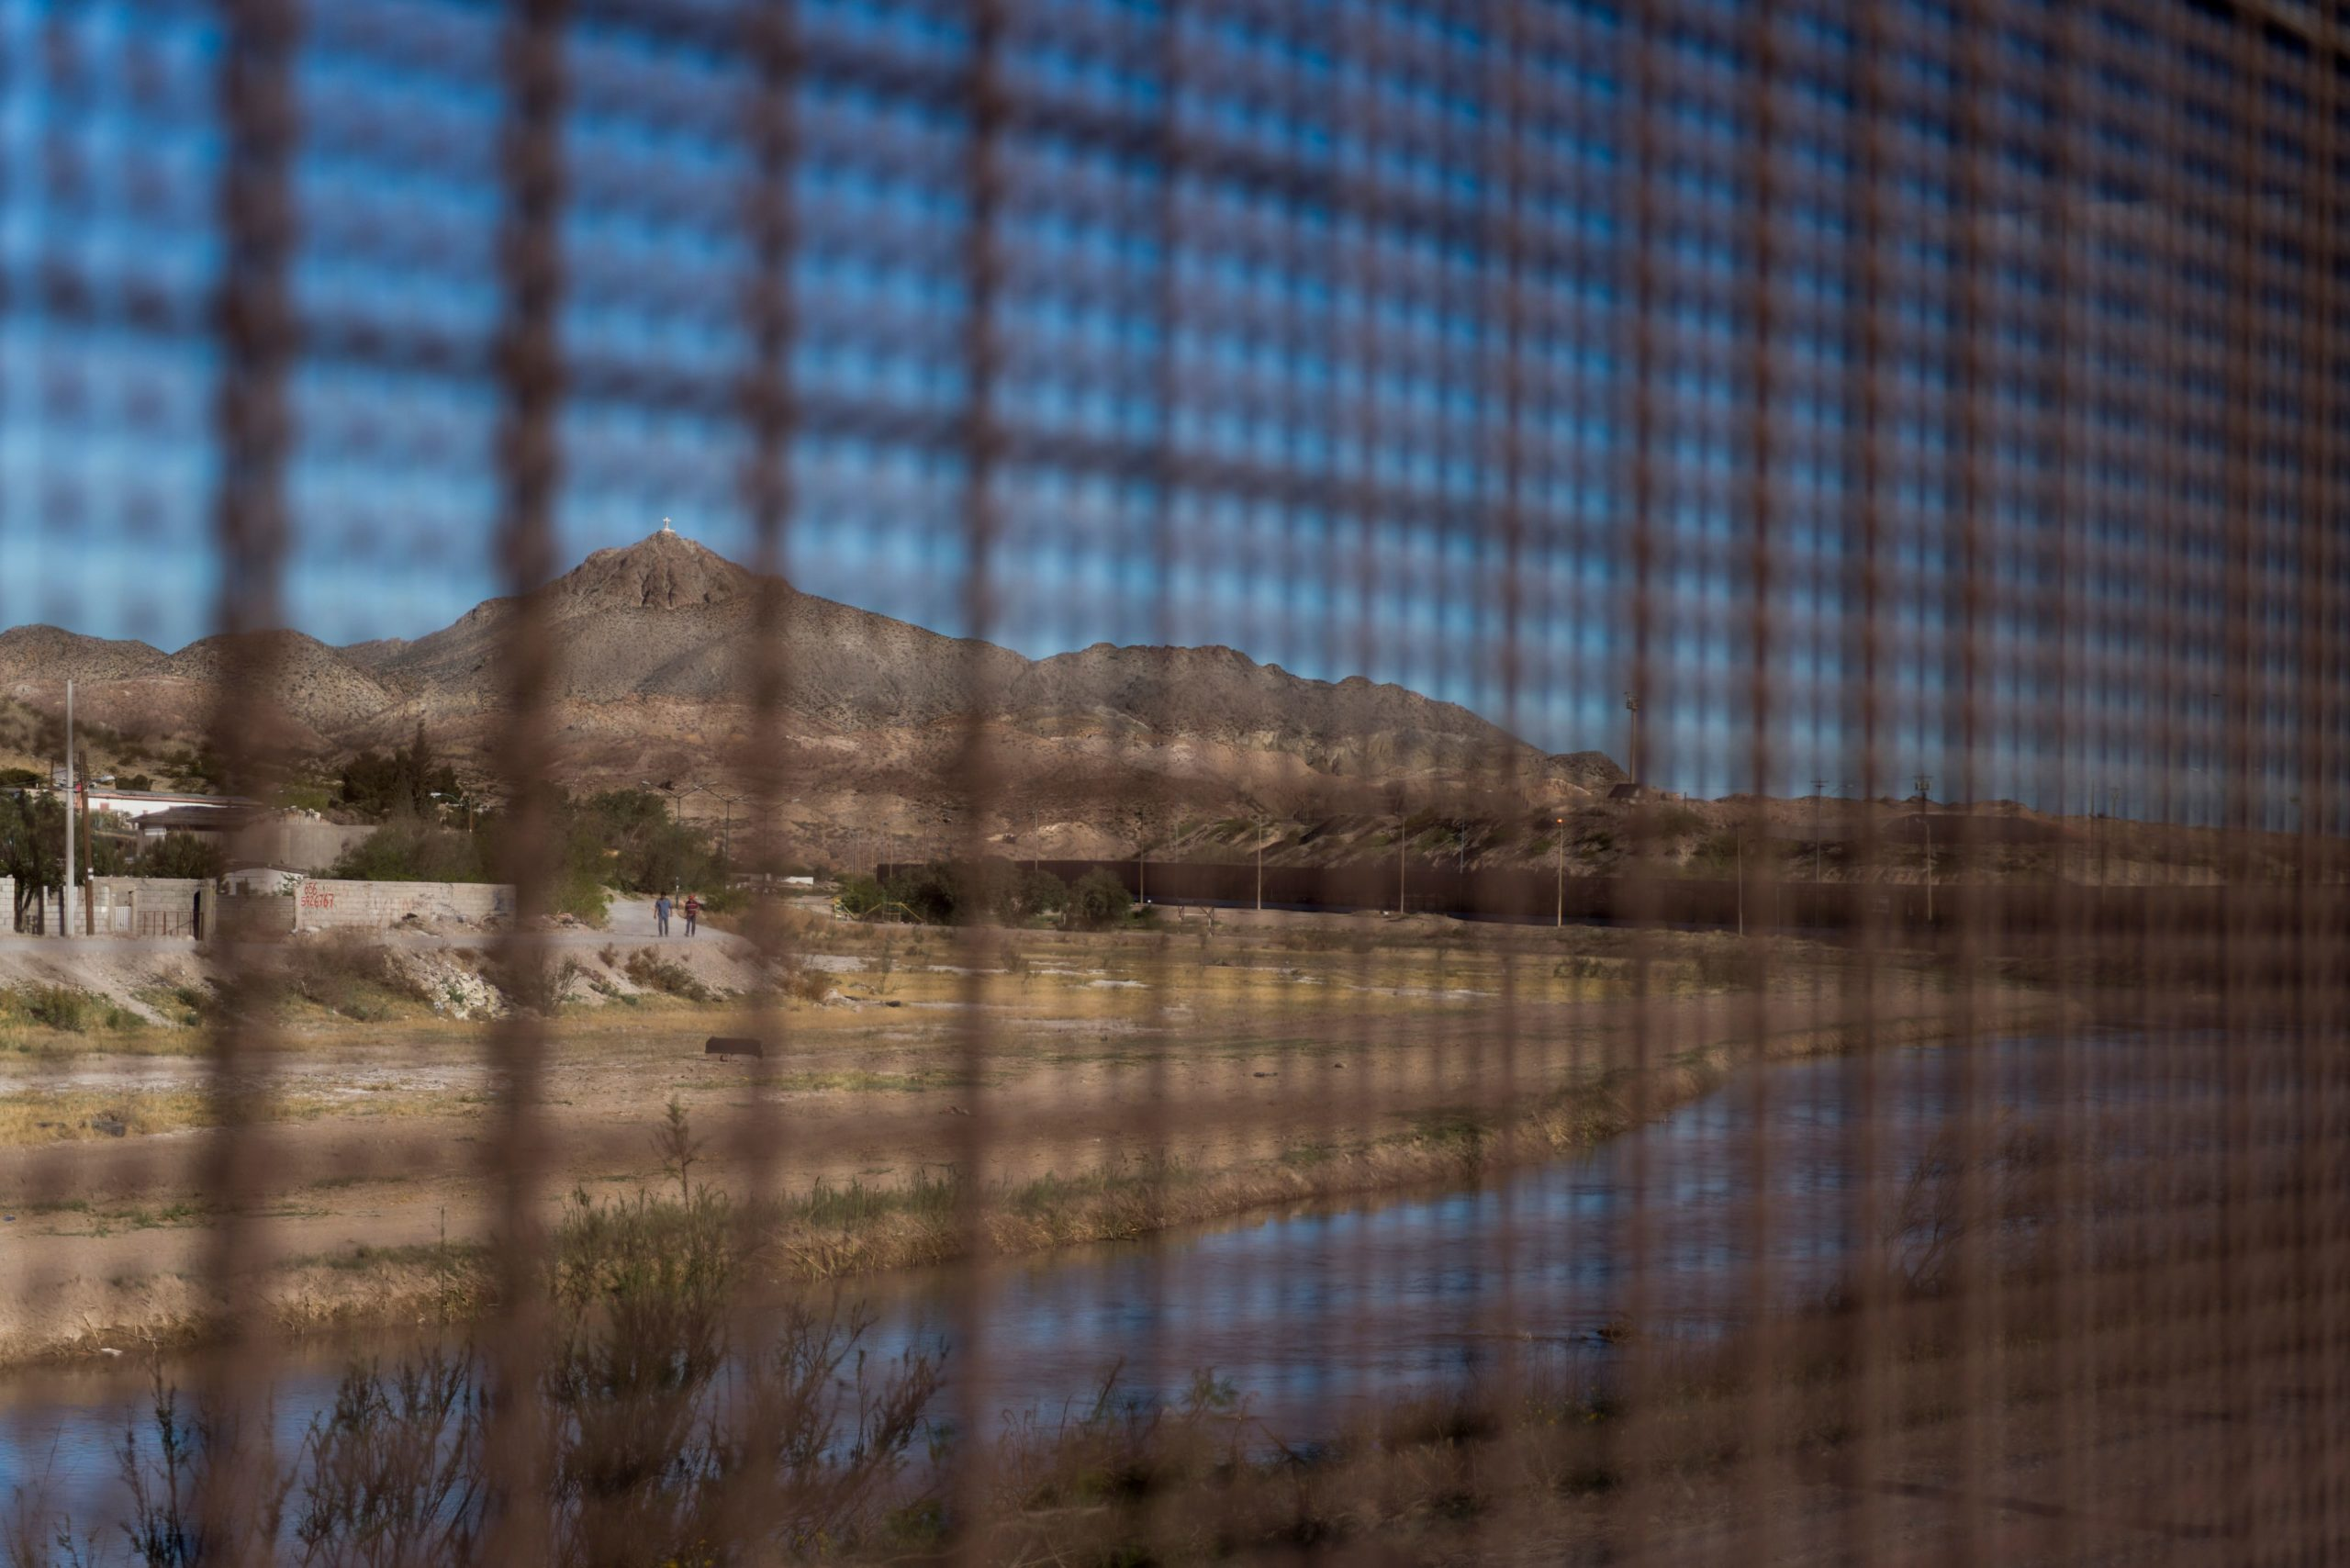 Mount Cristo Rey is pictured through the US-Mexico border fence near downtown El Paso, Texas, Sunday, April 8, 2018. (Photo credit should read PAUL RATJE/AFP via Getty Images)